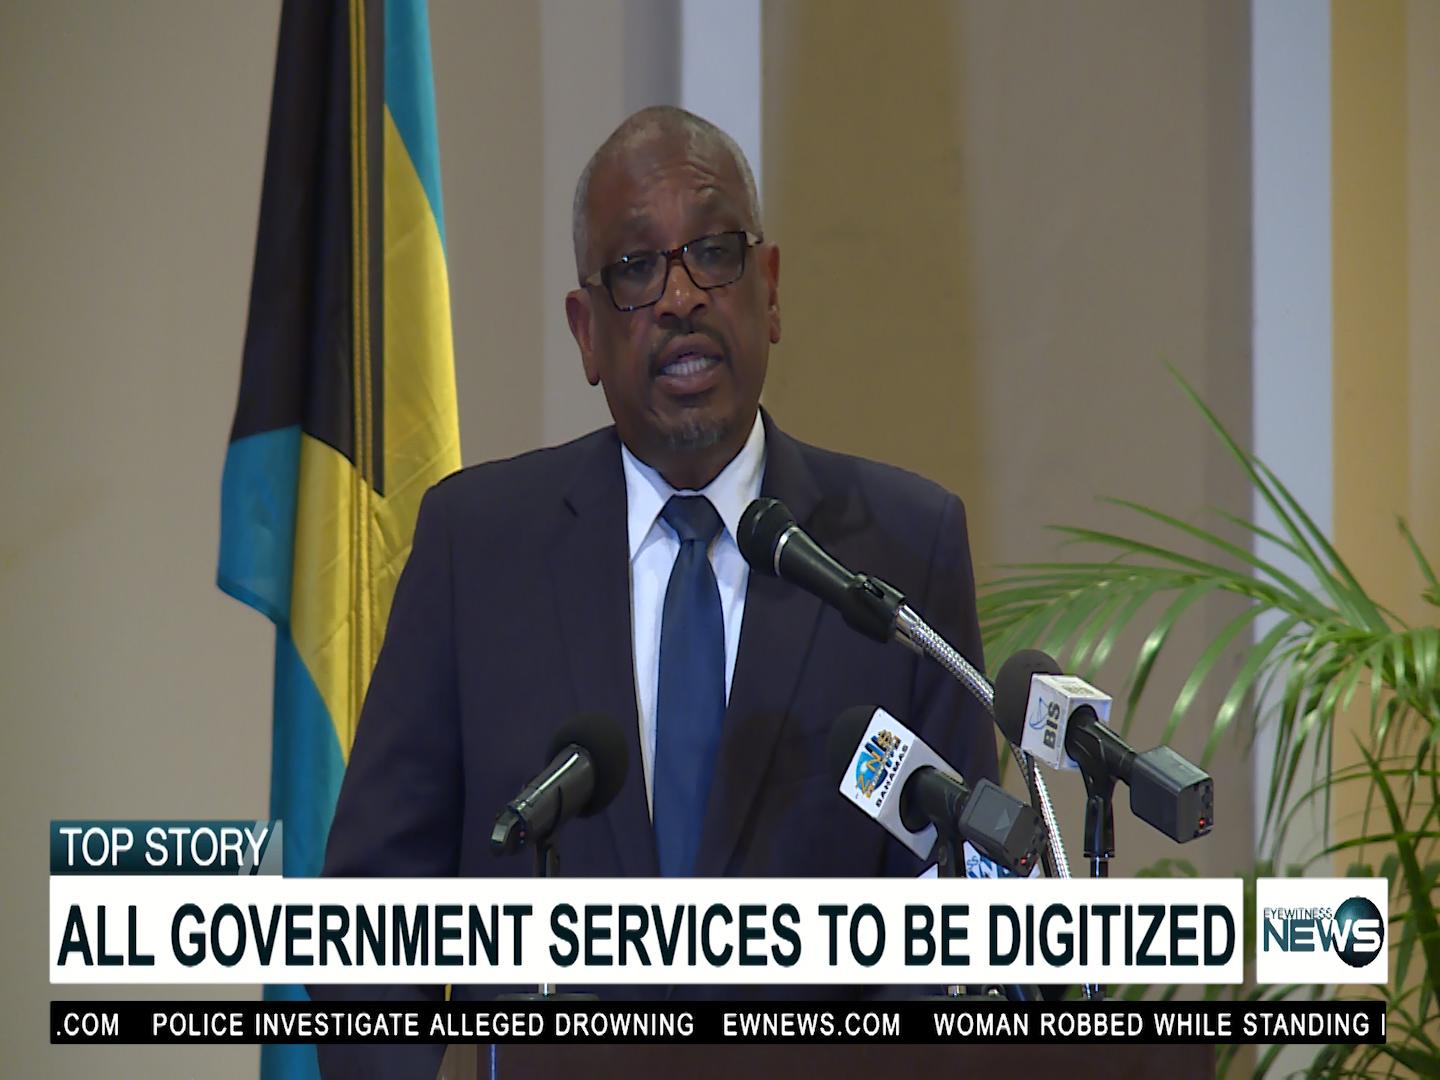 $30 million loan from IDB to digitize the public service